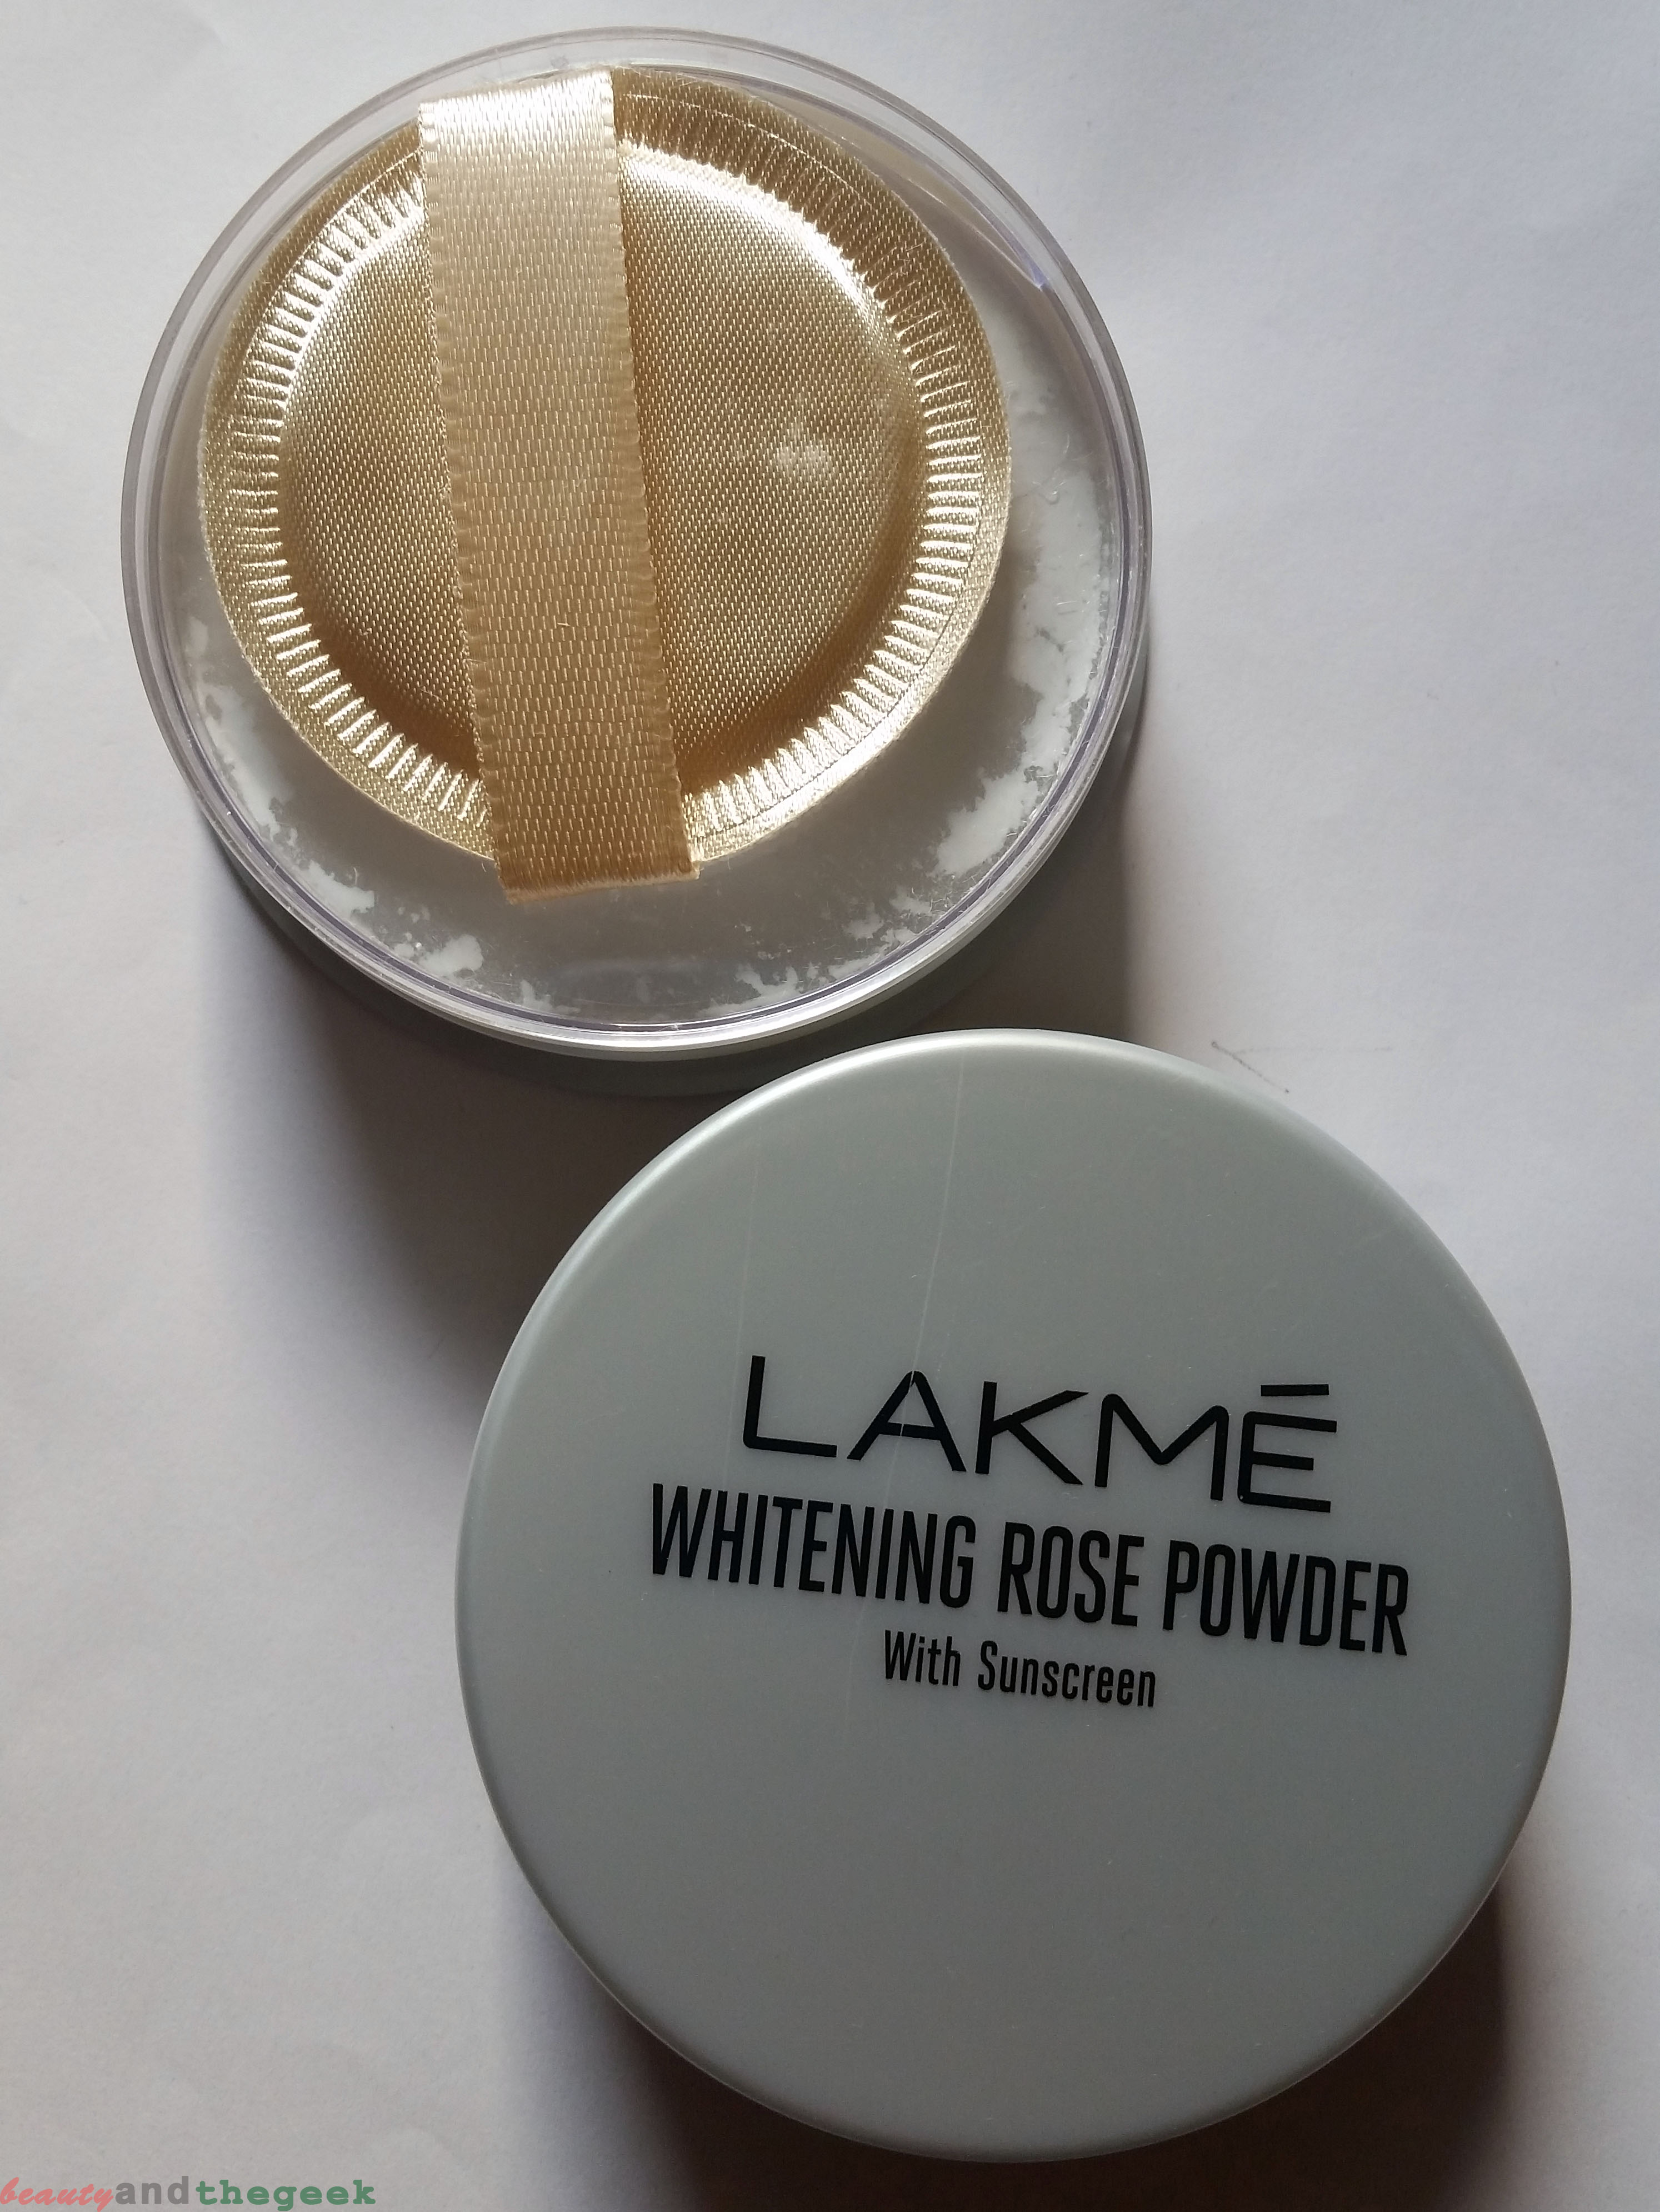 packaging of LAKME Whitening Rose Powder with Sunscreen